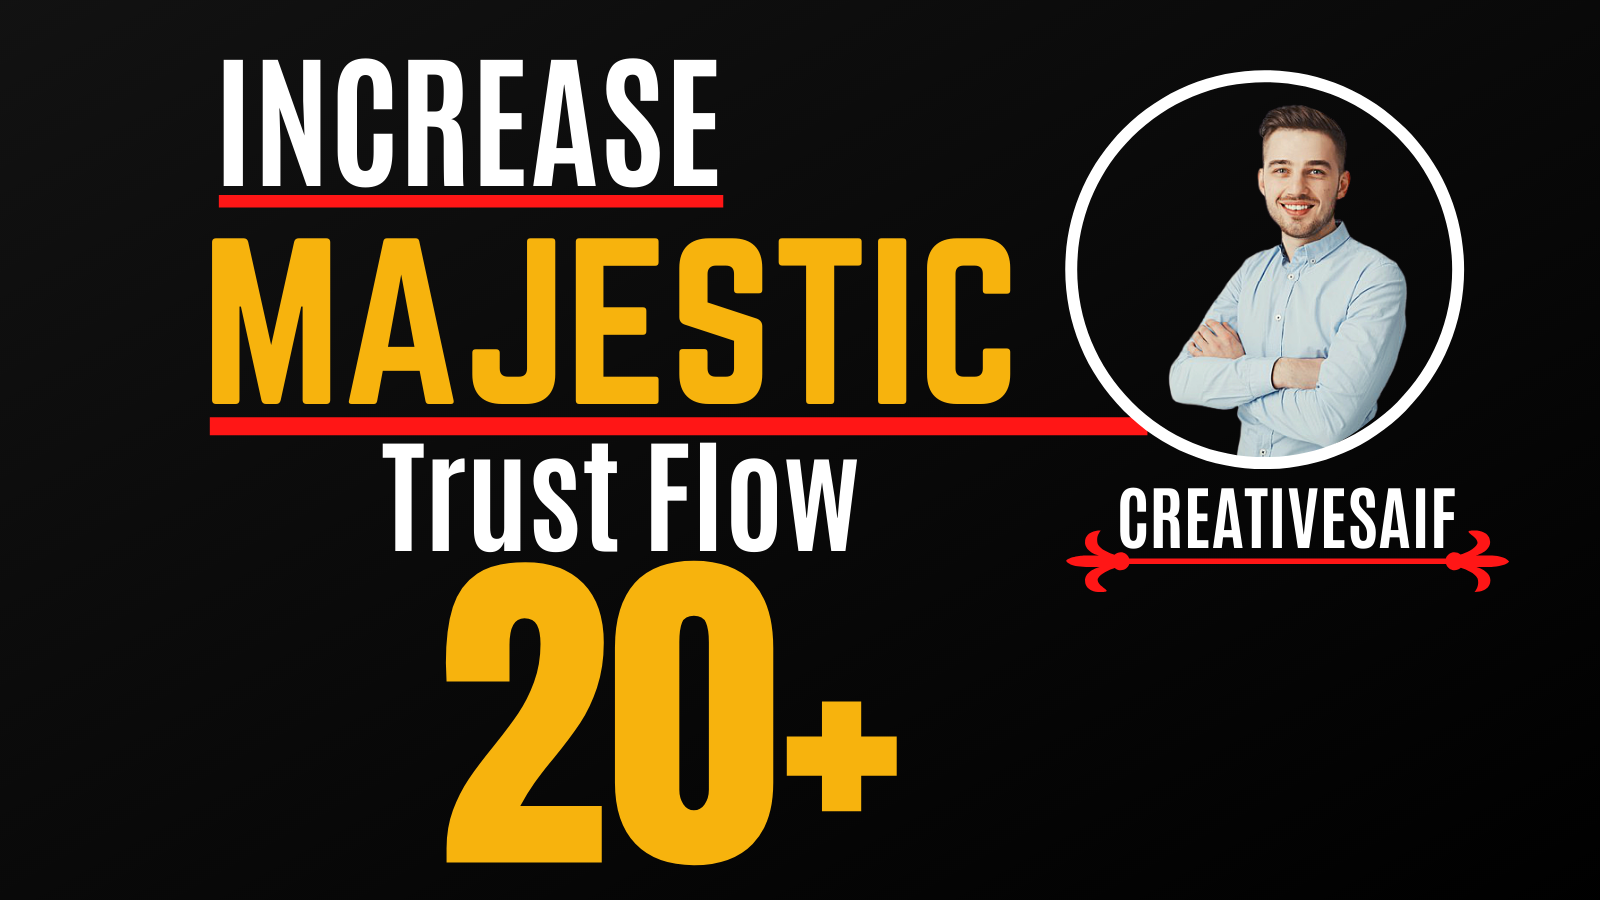 I will increase Majestic Trust Flow 20 plus with White hat SEO trust flow majestic TF 20